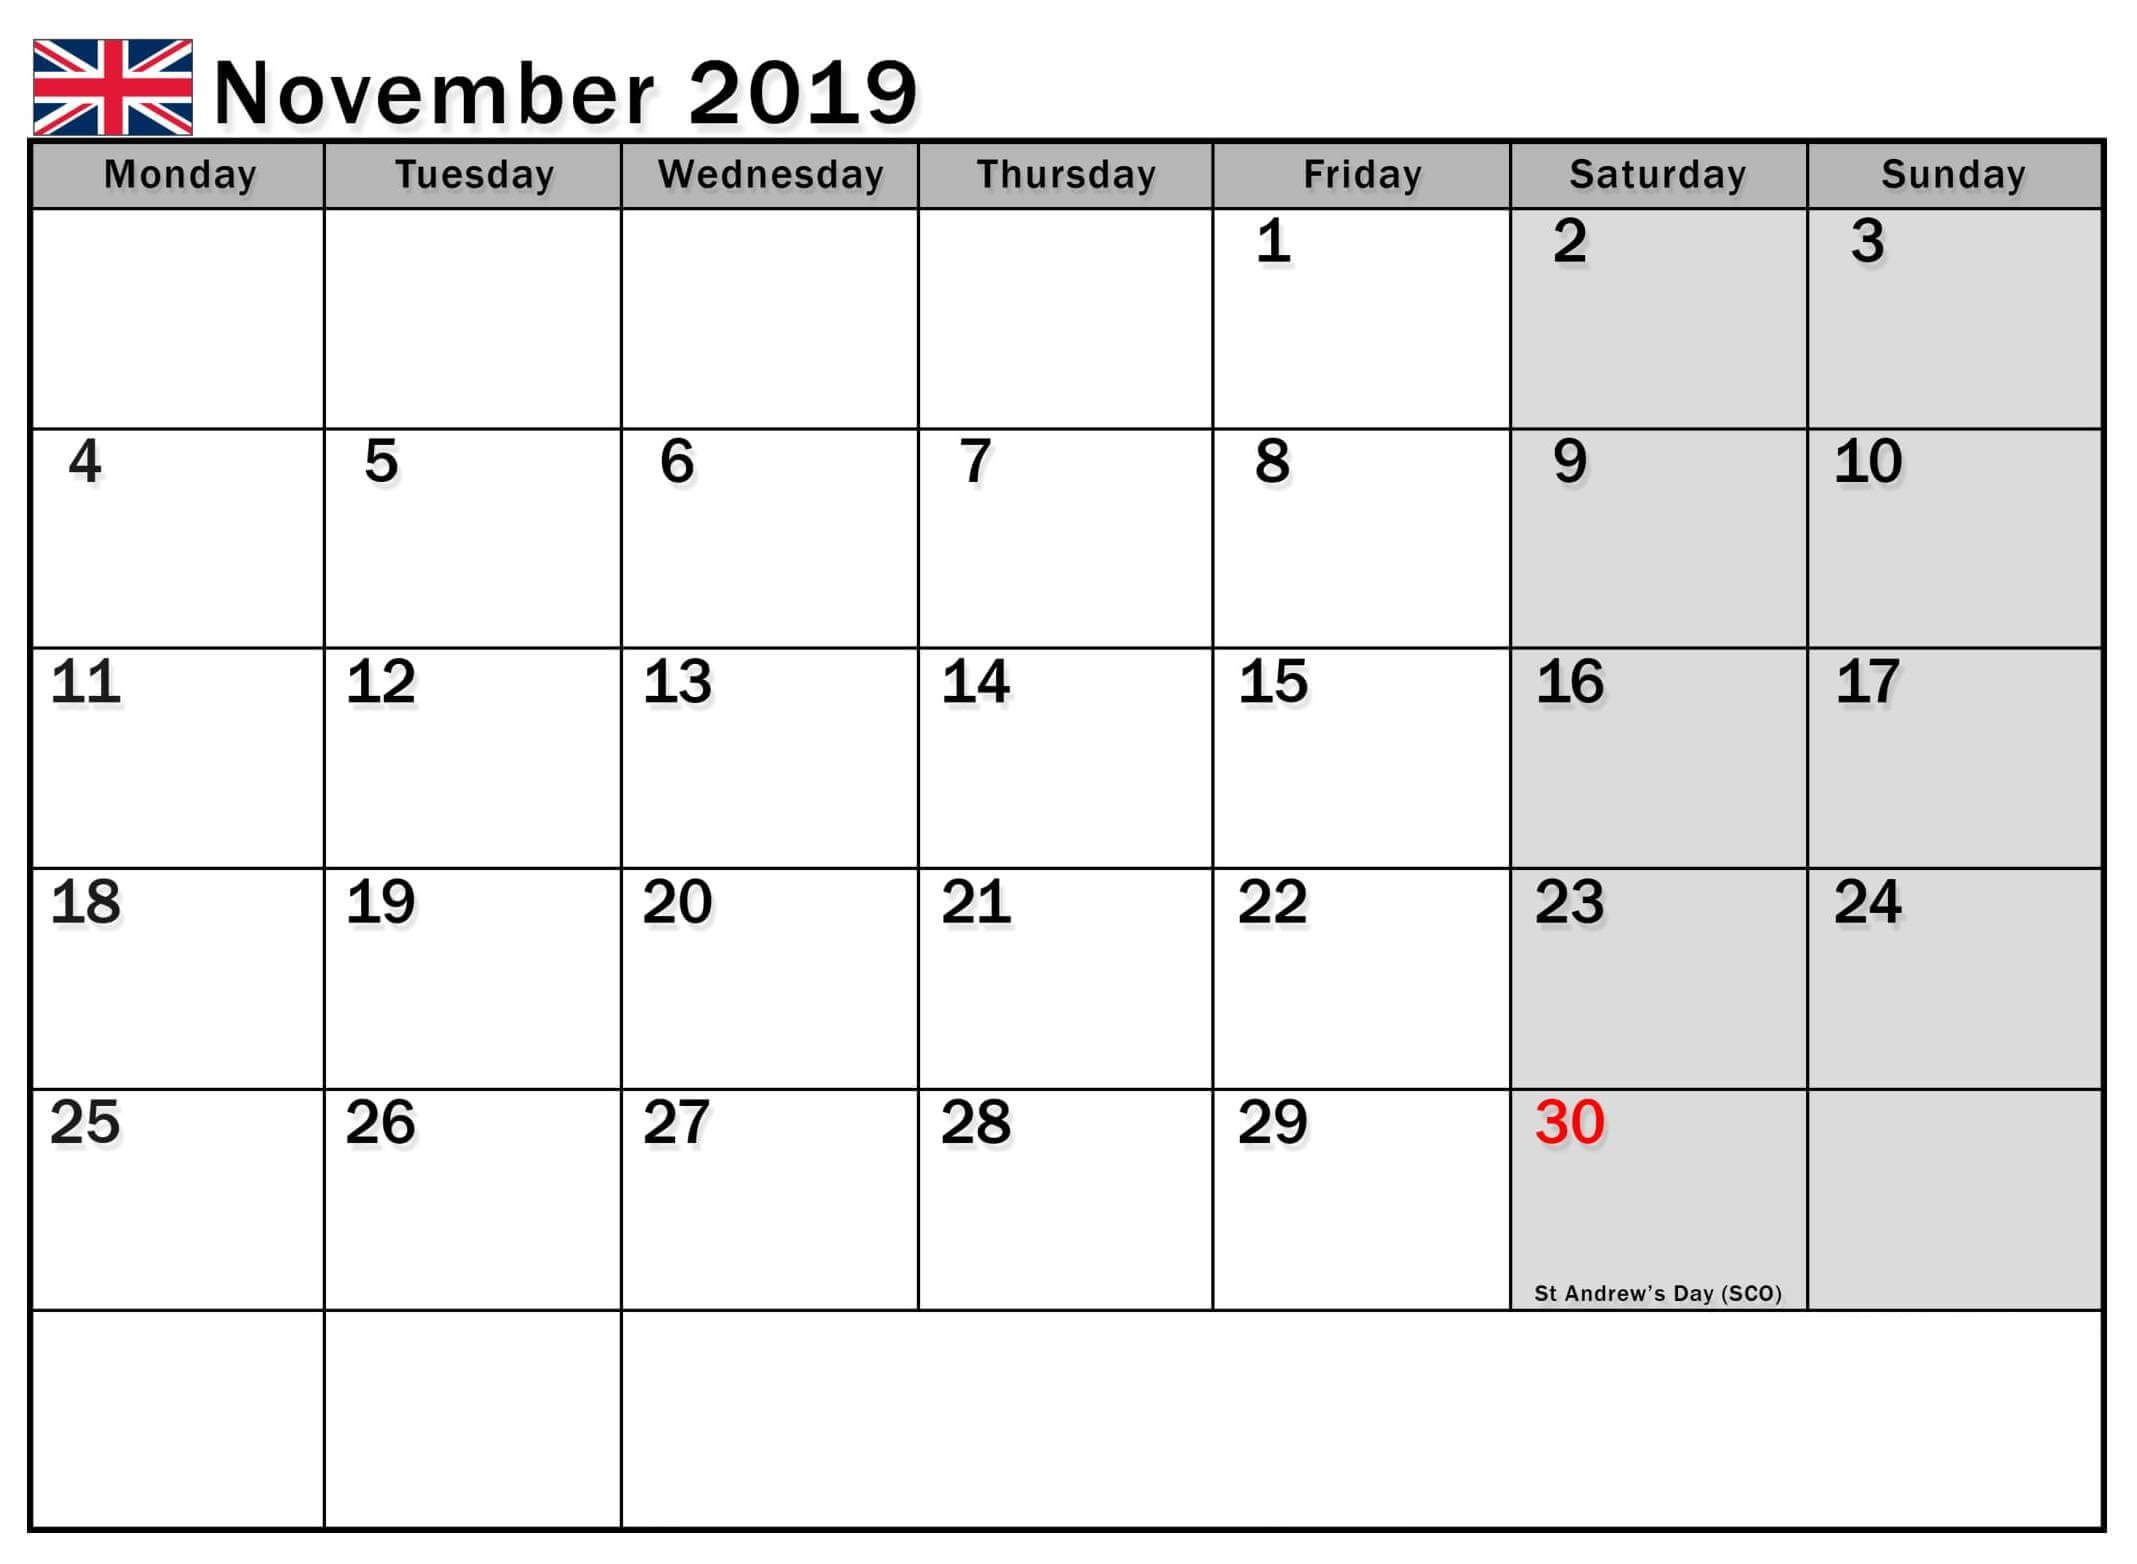 November 2019 Calendar UK National Holidays Holiday